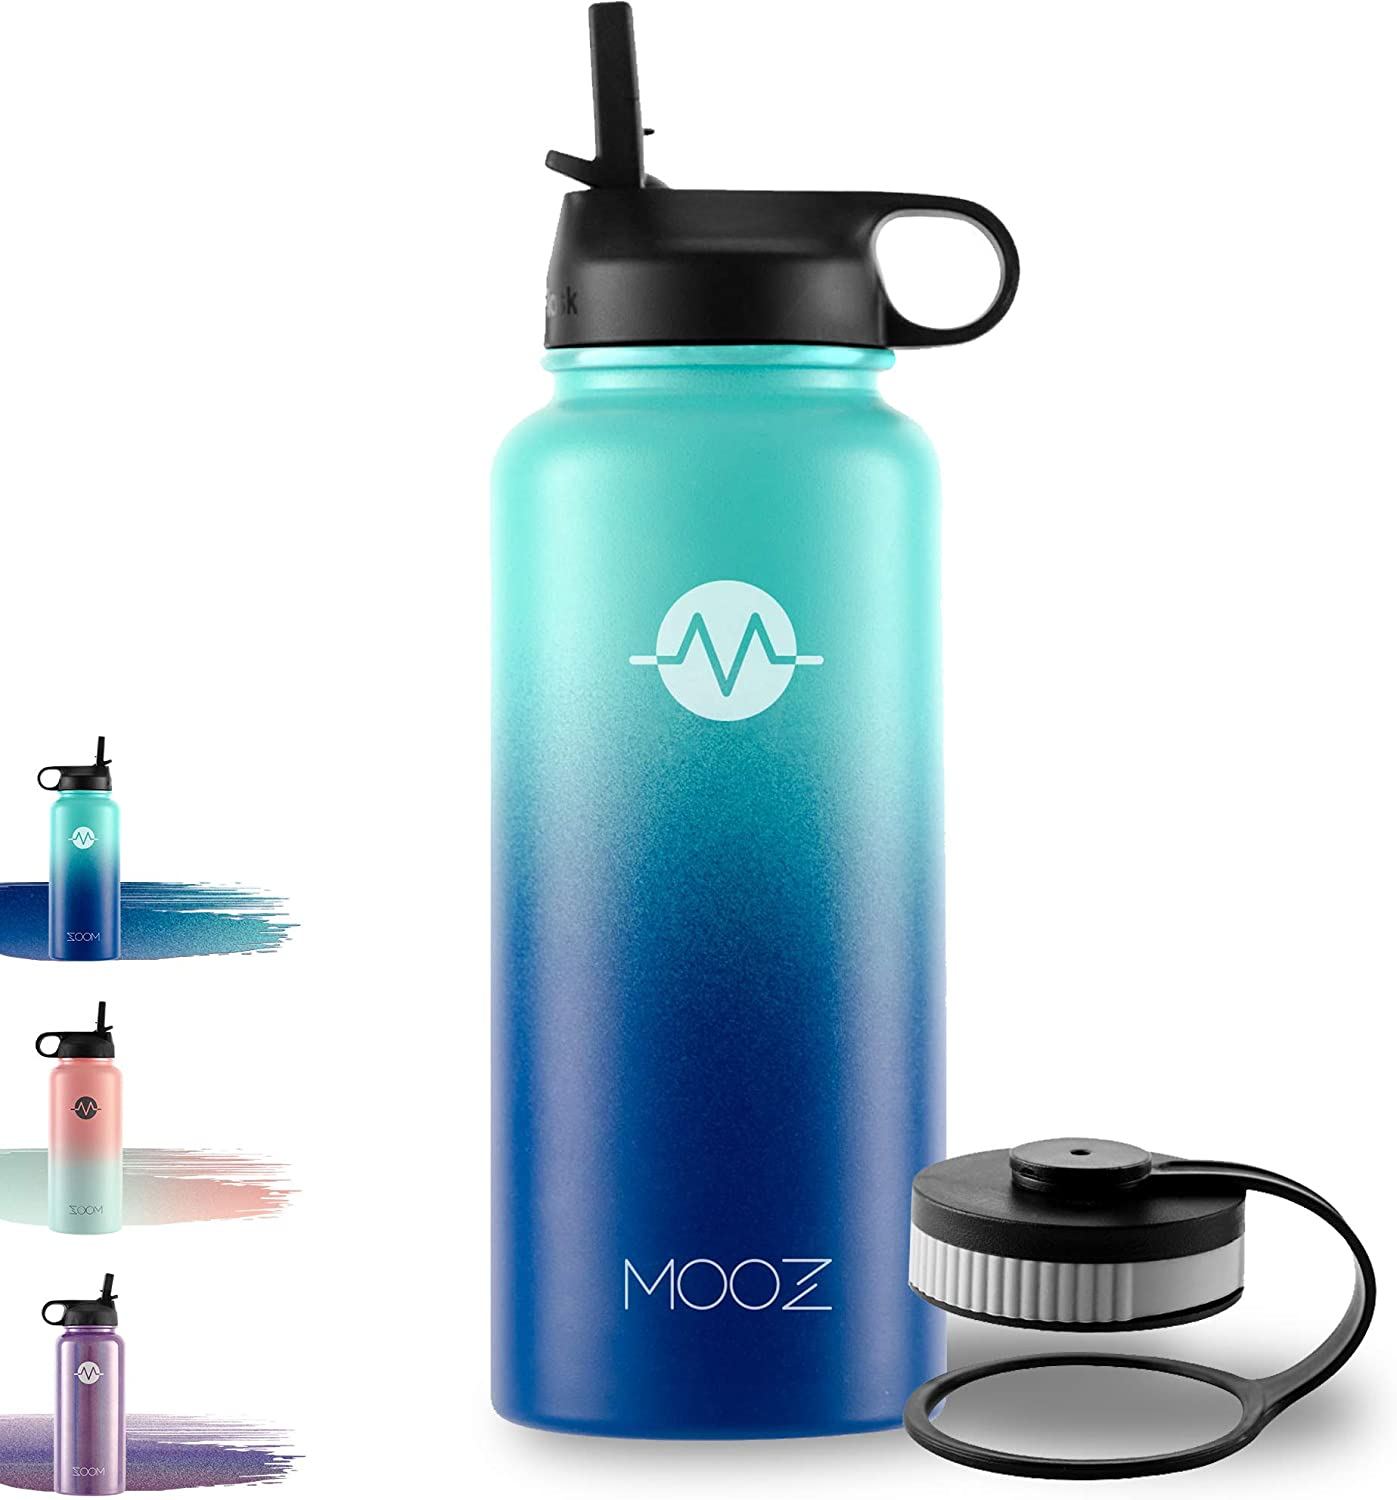 MOOZHEALTH Water Bottle 32 Oz - Stainless Steel Sports Water Bottle, Two Wide-Mouth lids, Cold or hot, Double-Layer Vacuum Insulation and Sweat-Proof Sports Design